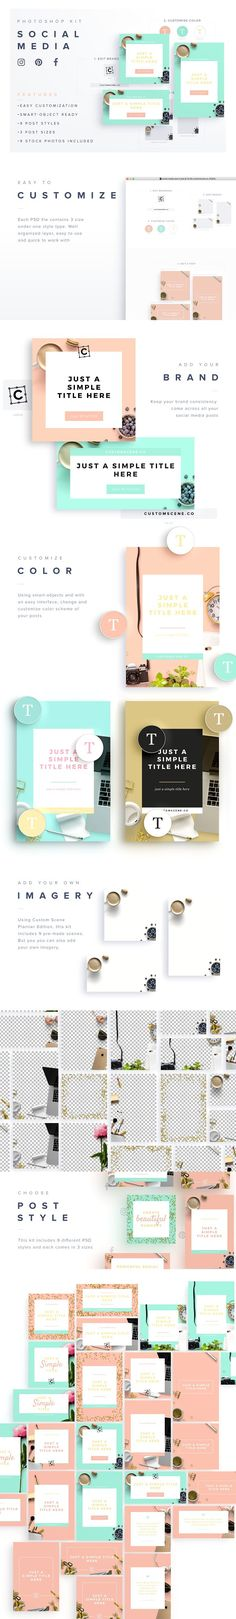 -70% Social Media Kit + Stock Photos - 9 Post Styles 3 Post Sizes. Images optimized for Instagram, Facebook Post, Twitter Post, Pinterest Pin and Blog Post. 9 Stock Photos Included. By Román Jusdado $5 #affiliatelink